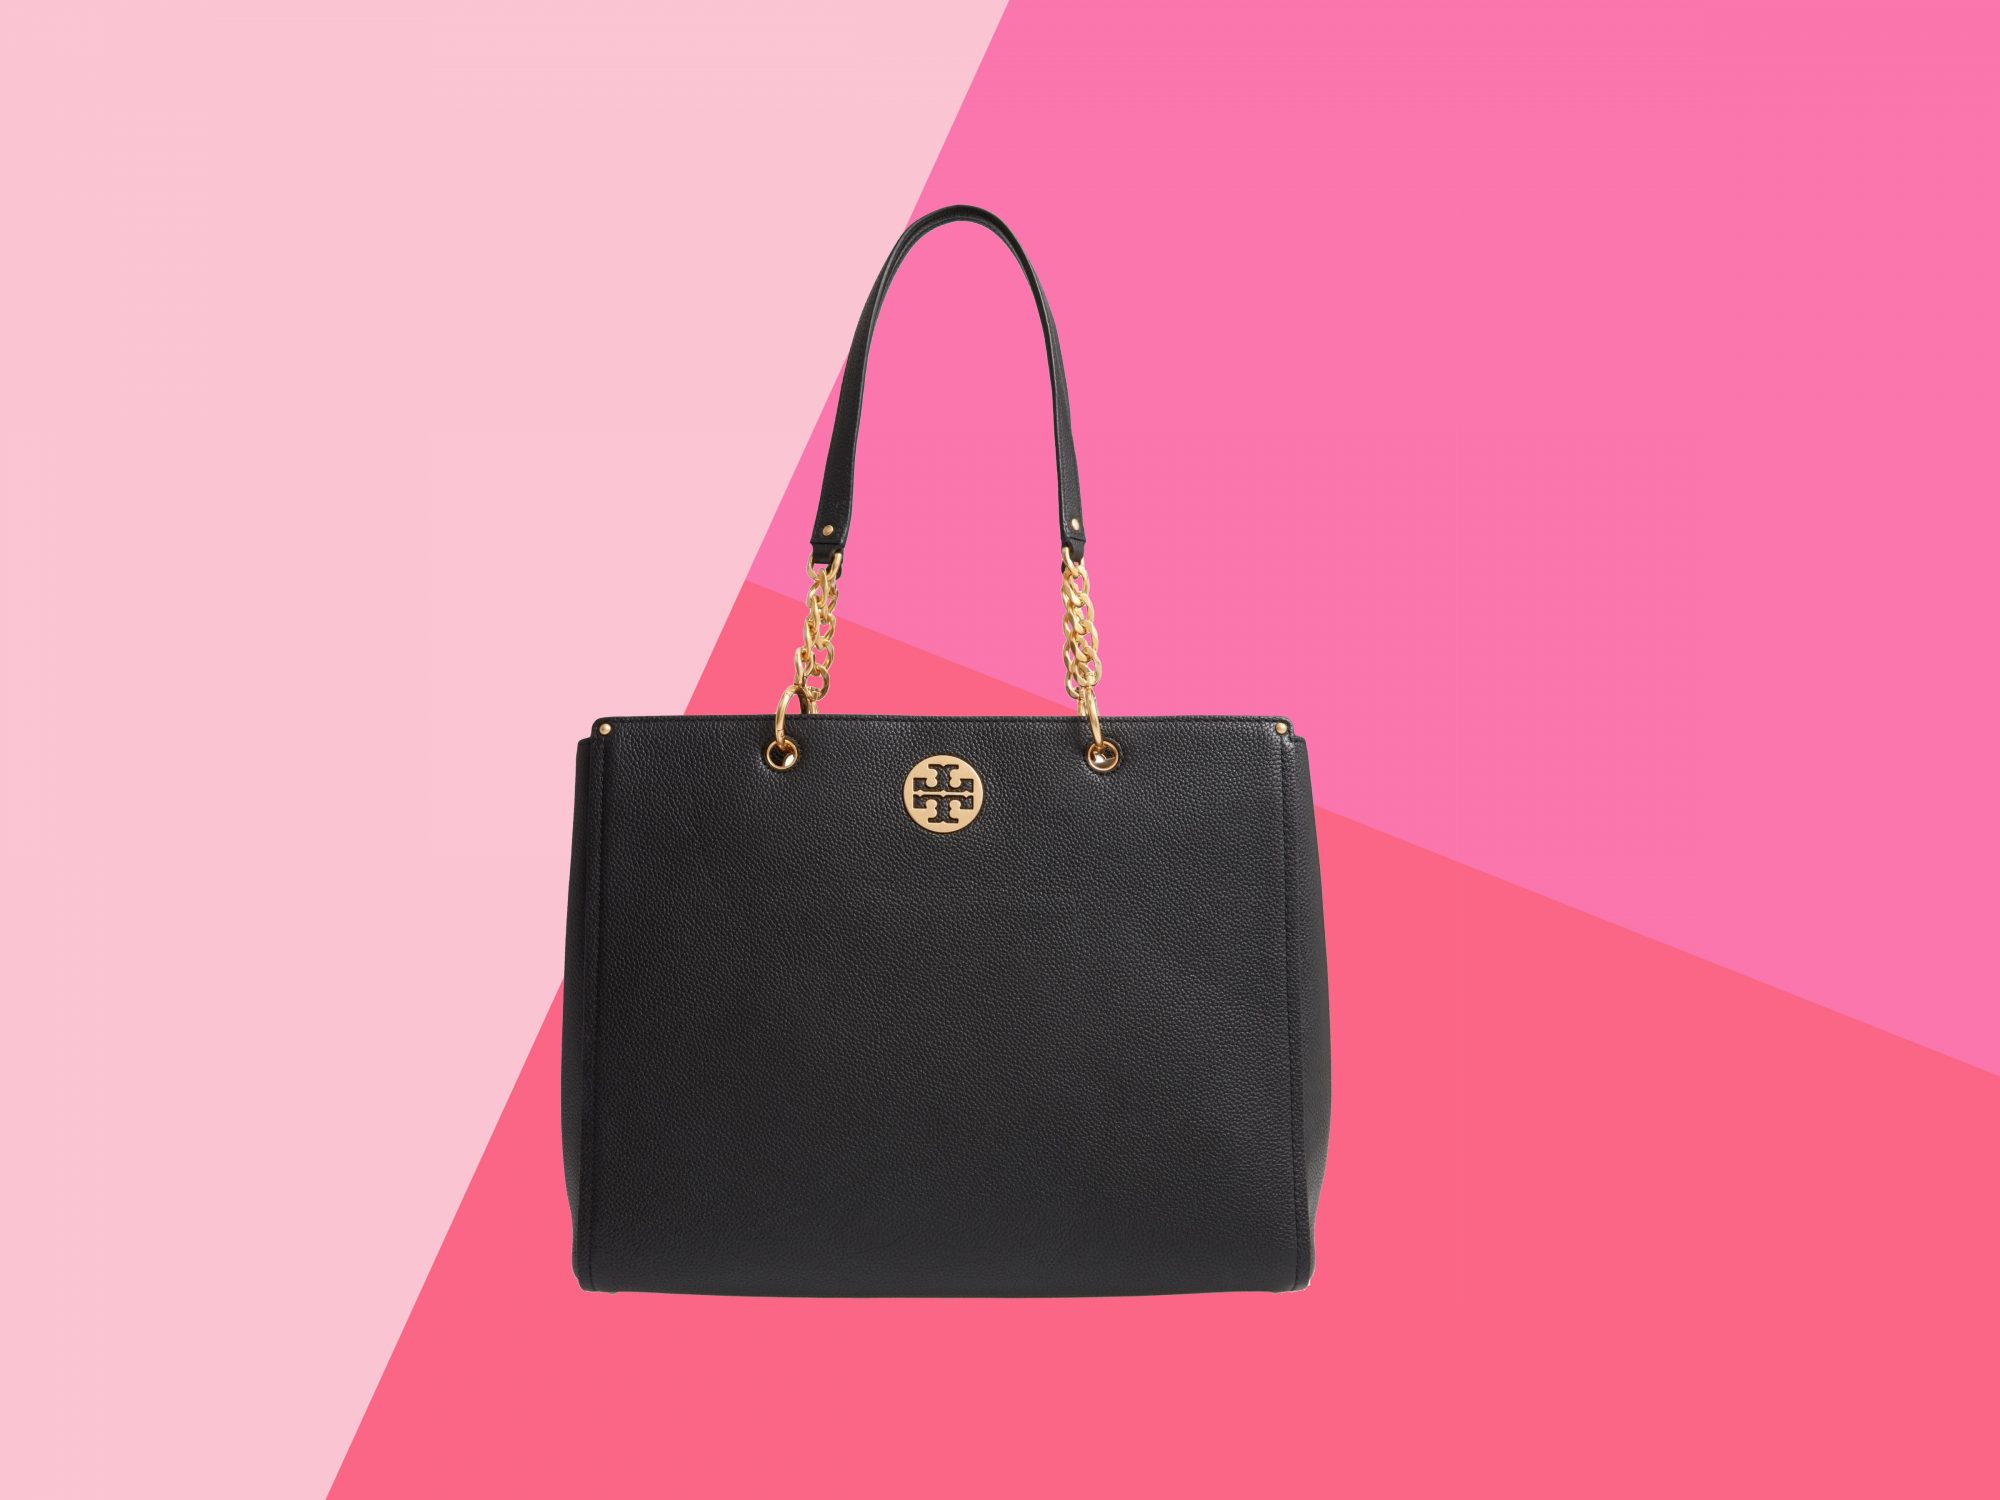 Tory Burch Tote Bag Nordstrom Anniversary Sale